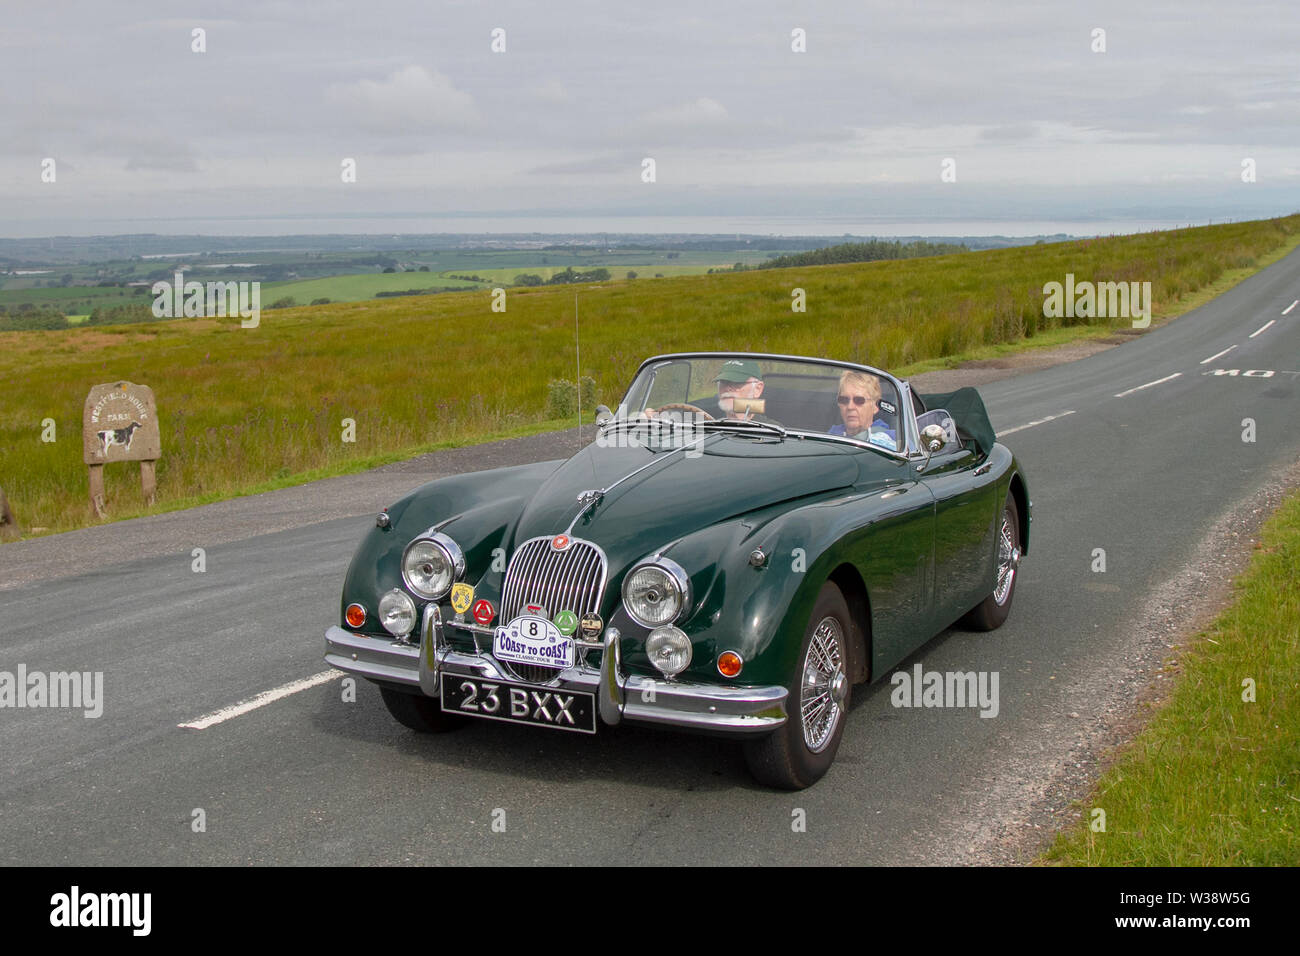 Jaguar XK150 DHC at Scorton, Lancashire. UK Weather 13th July, 2019. Sunny conditions as the Lancashire Car Club Rally Coast to Coast crosses the Trough of Bowland. 74 vintage, classic, collectible, heritage, historics vehicles left Morecambe heading for a cross county journey over the Lancashire landscape to Whitby. A 170 mile trek over undulating landscape as part of the classics on tour car club annual event. Credit: MediaWorldImages/Alamy Live News Stock Photo